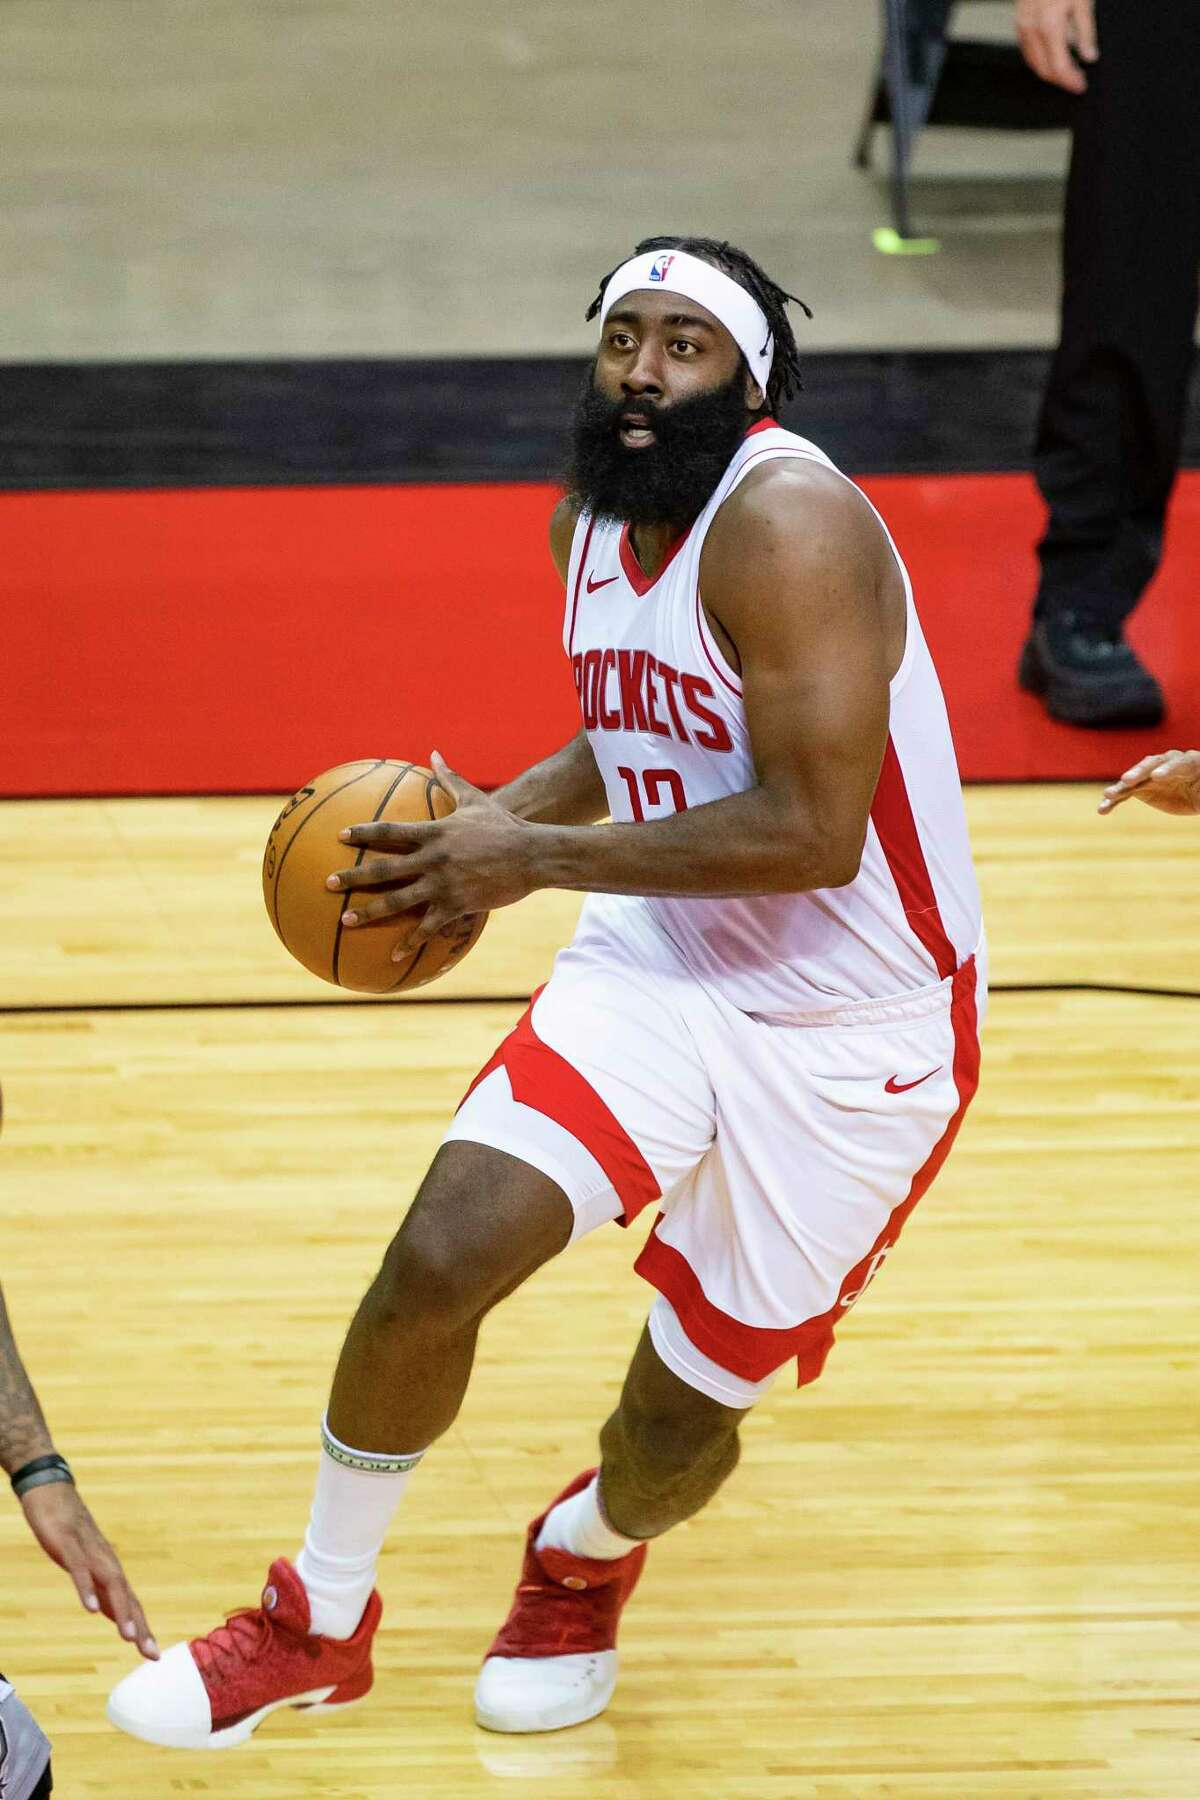 Houston Rockets guard James Harden (13) drives during the first half of a preseason game between the Houston Rockets and San Antonio Spurs on Tuesday, Dec. 15, 2020, at Toyota Center in Houston.